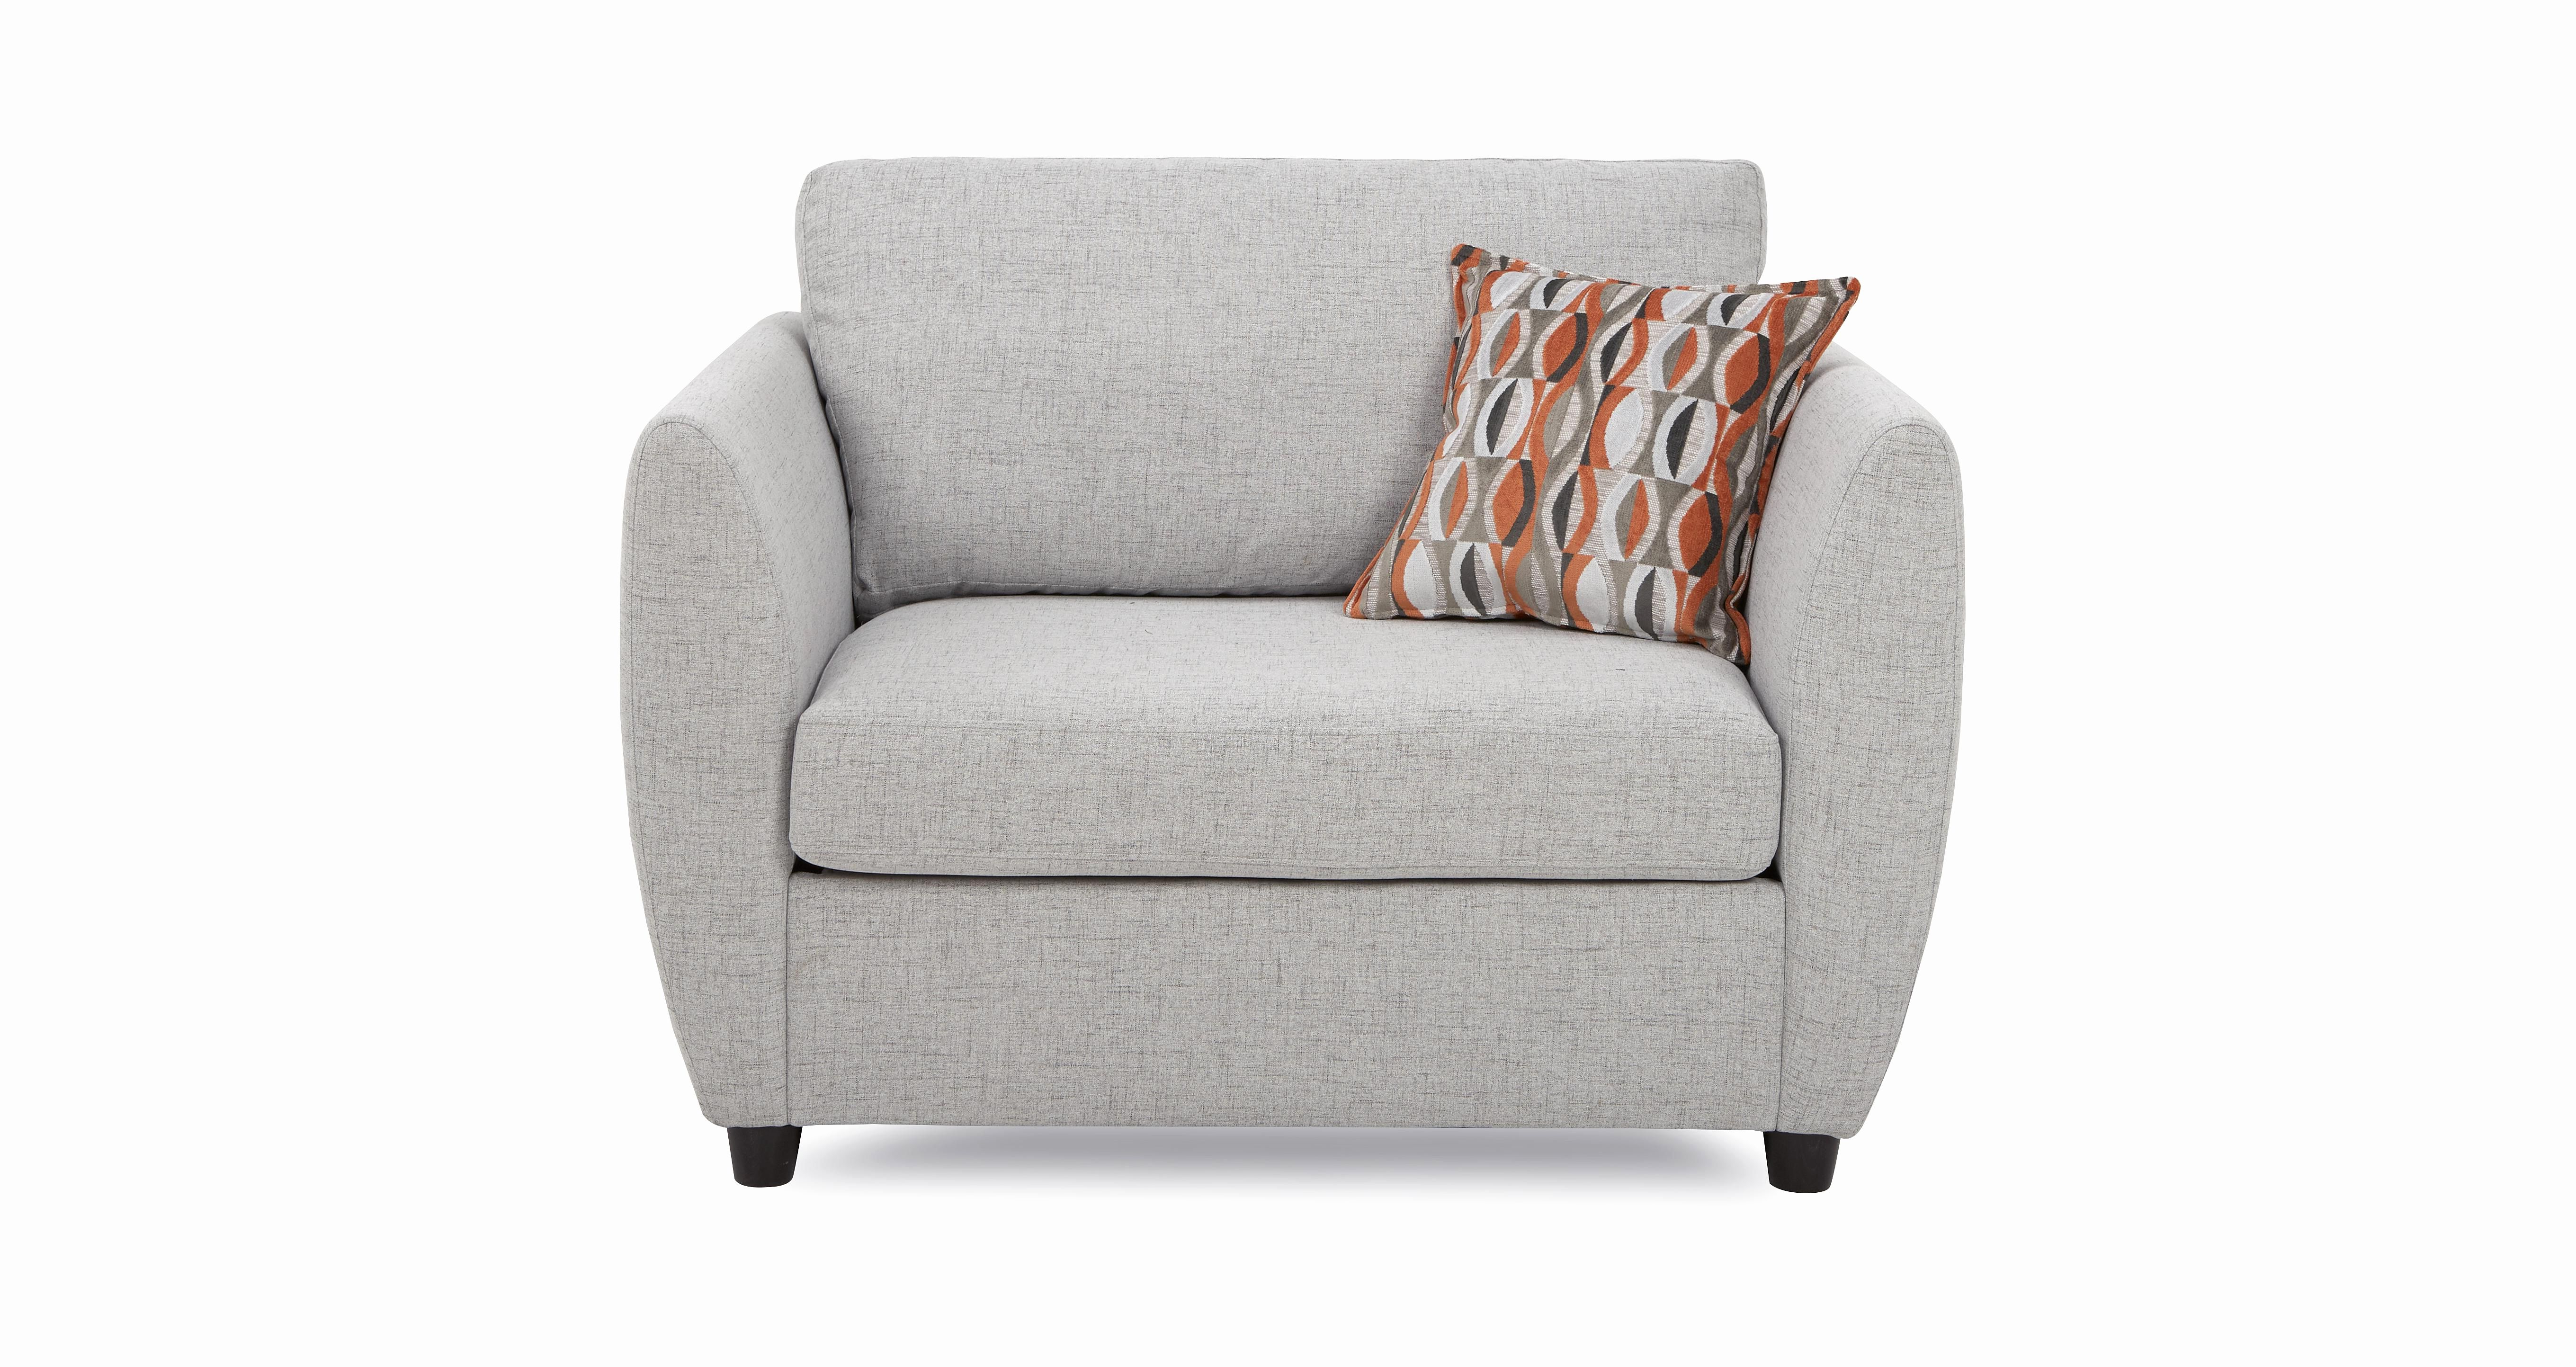 Single Sofa Bed Chairs Regarding Most Up To Date Beautiful Sofa Chairs For Bedroom Shot Sofa Chairs For Bedroom (View 10 of 20)